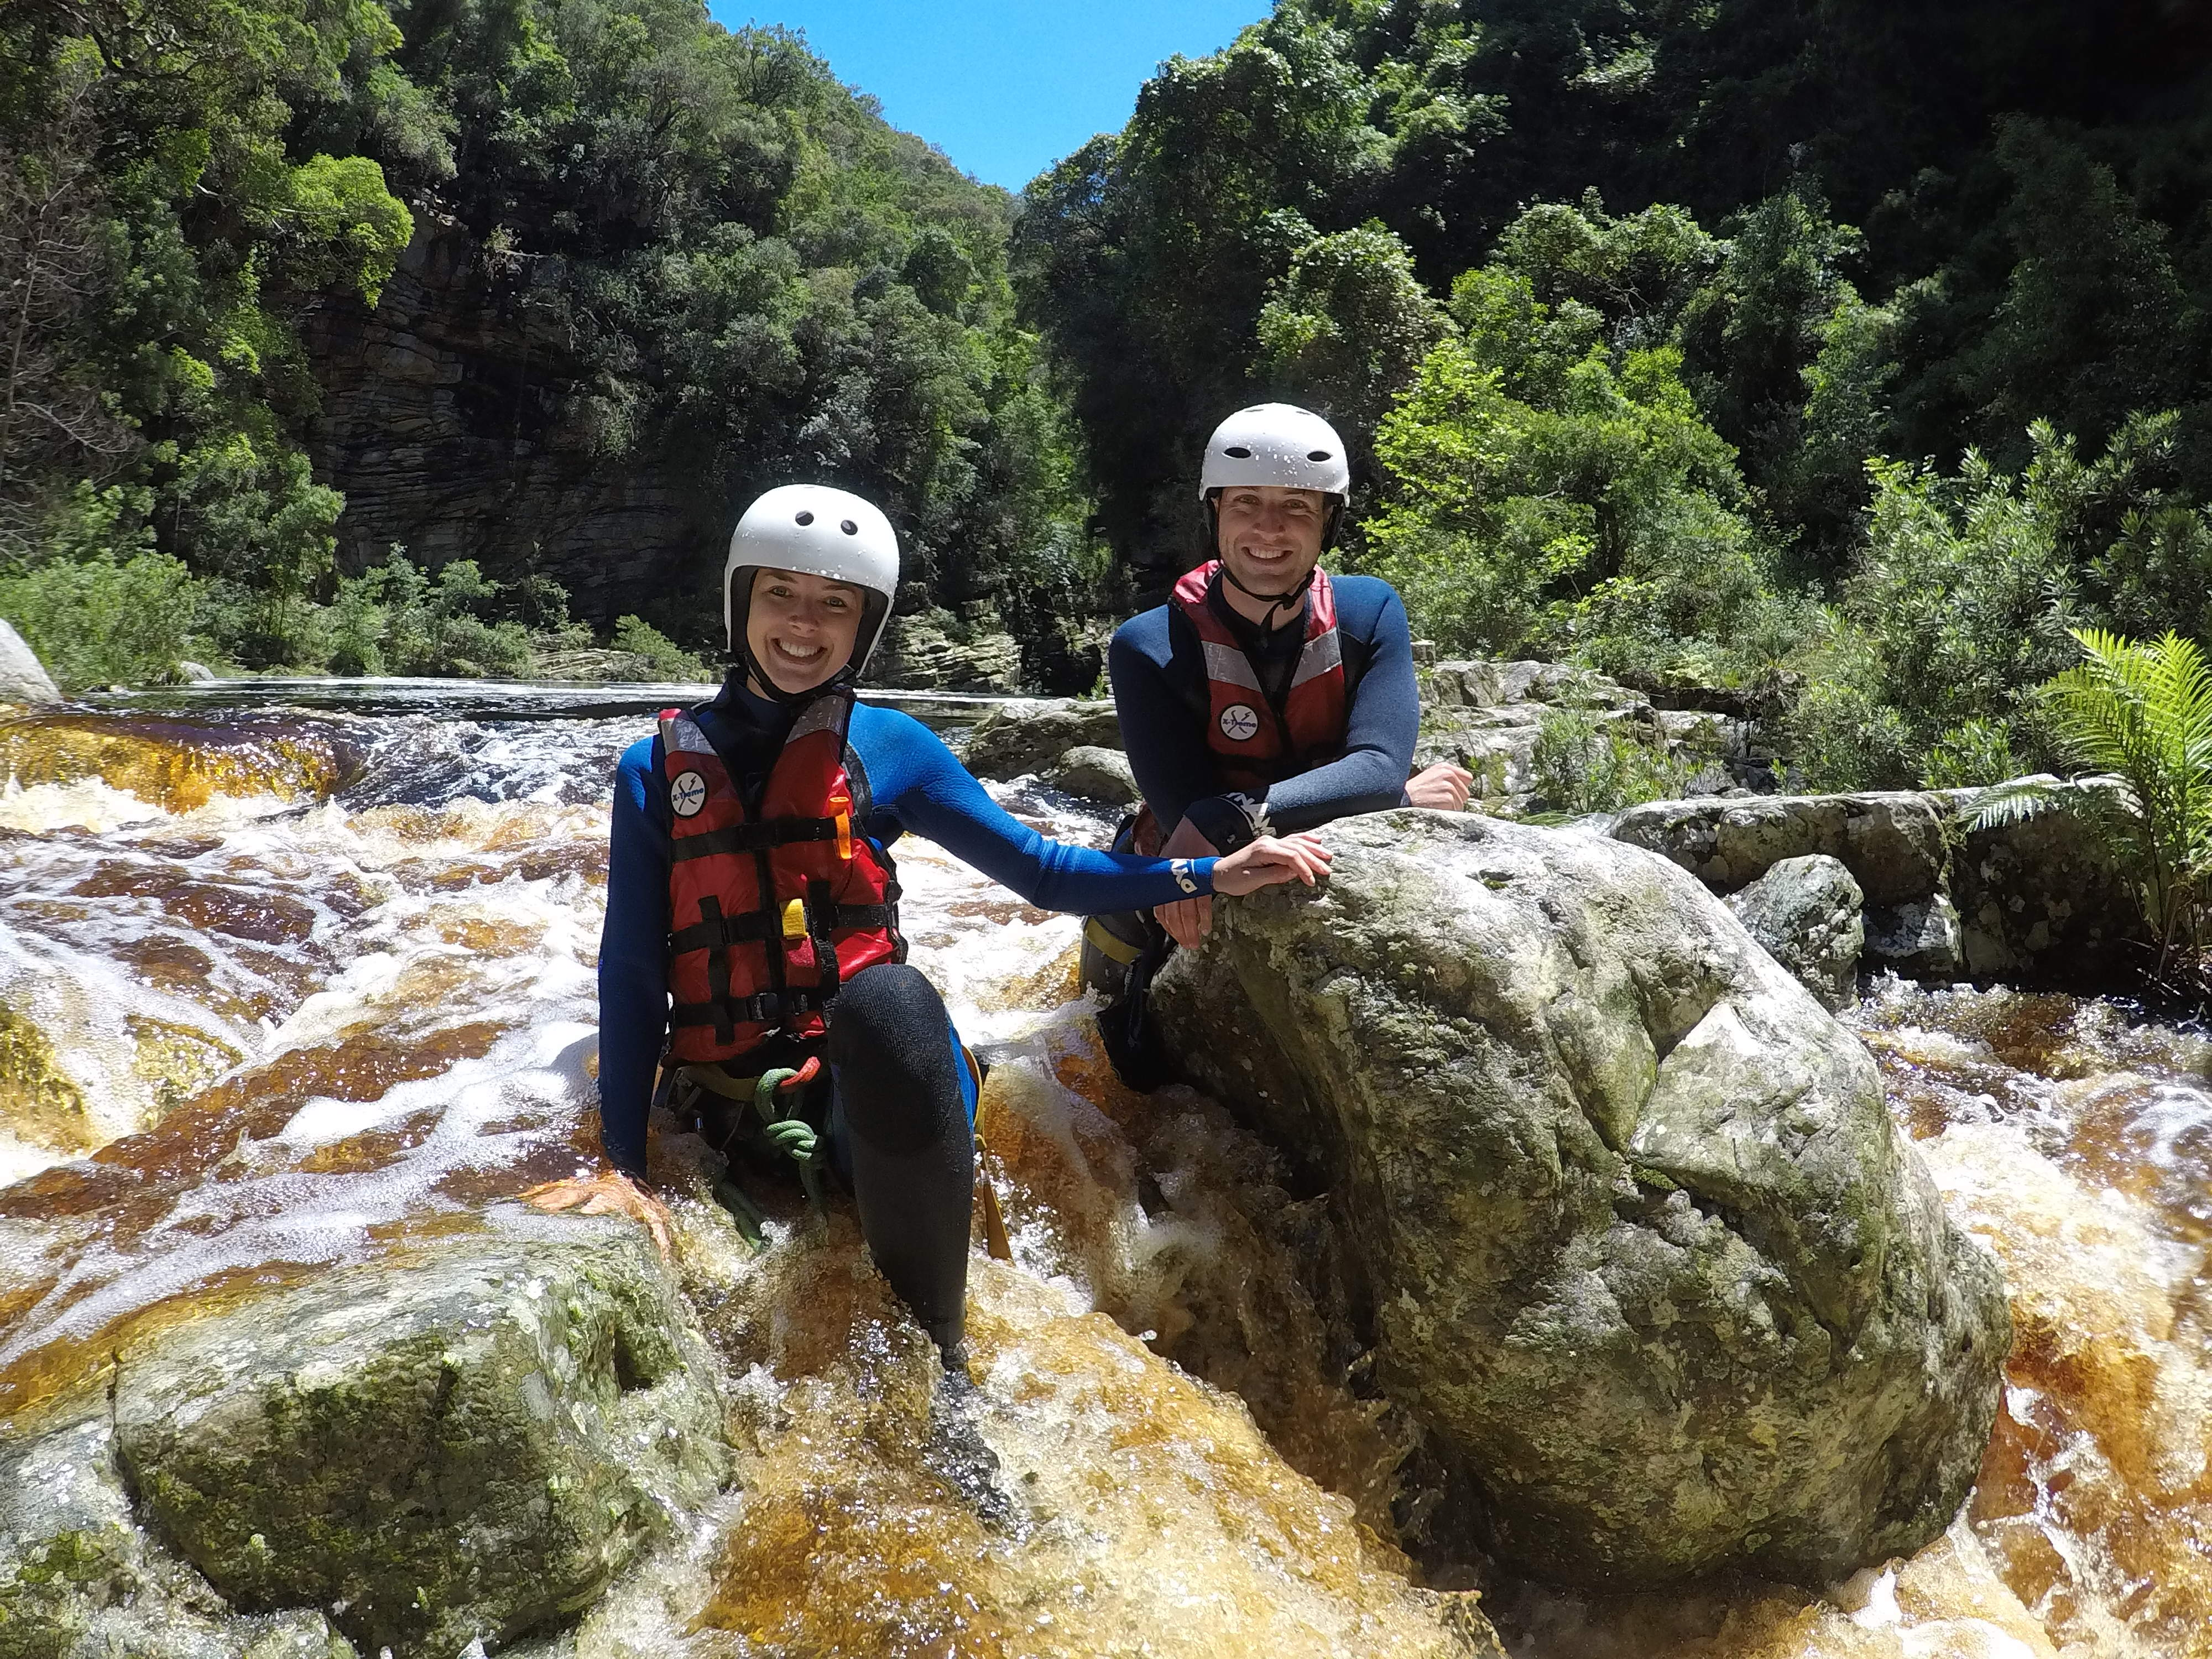 Canyon Adventures - Kloofing